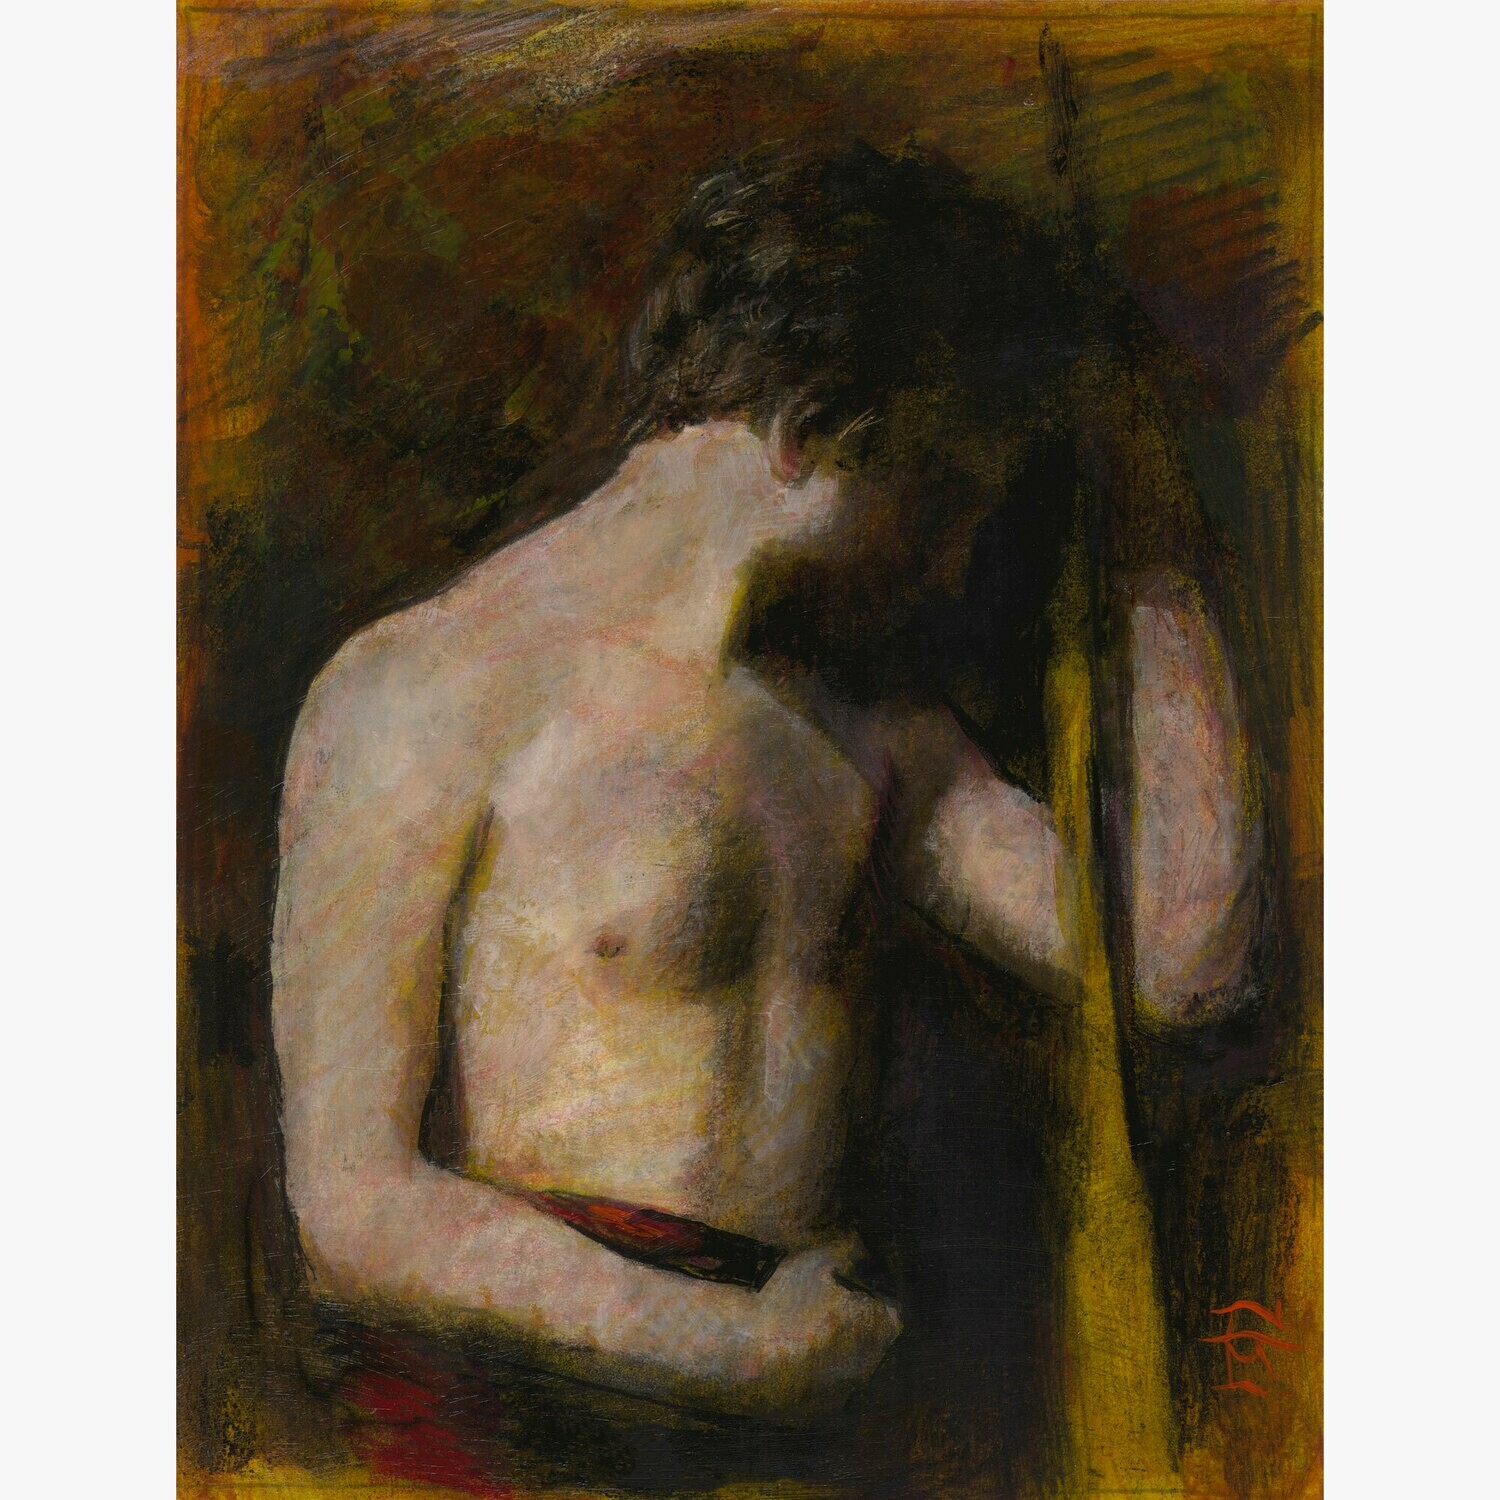 Untitled Male Nude, Original Mixed-Media Painting on Paper